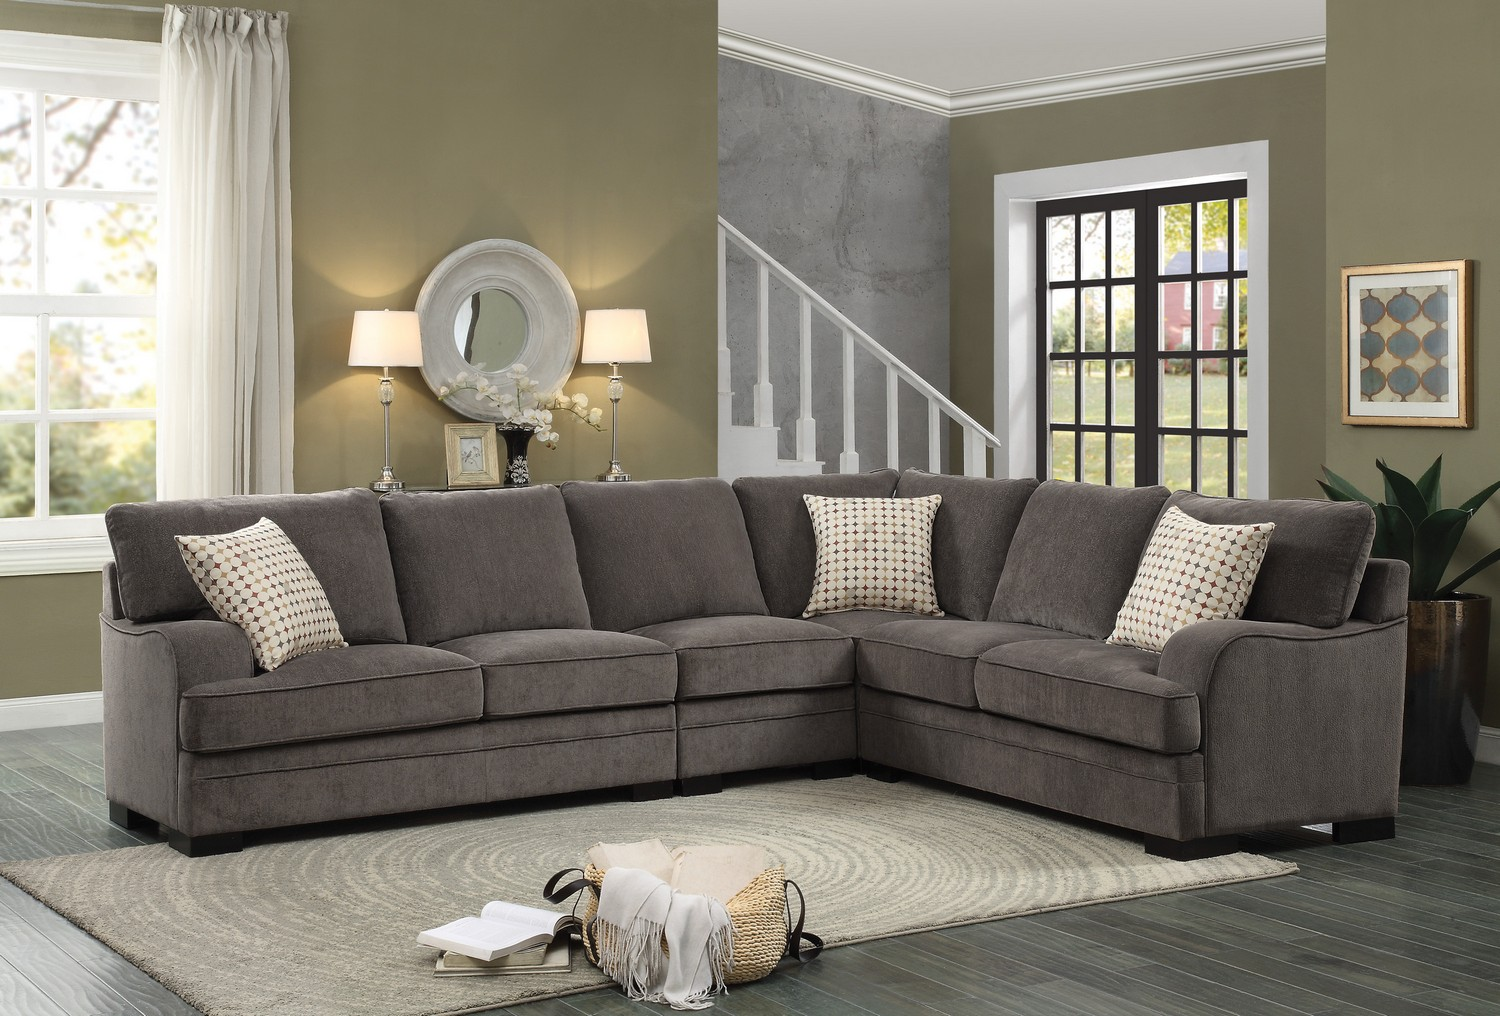 Homelegance Alamosa Sectional Sofa Set - Chenille - Brown